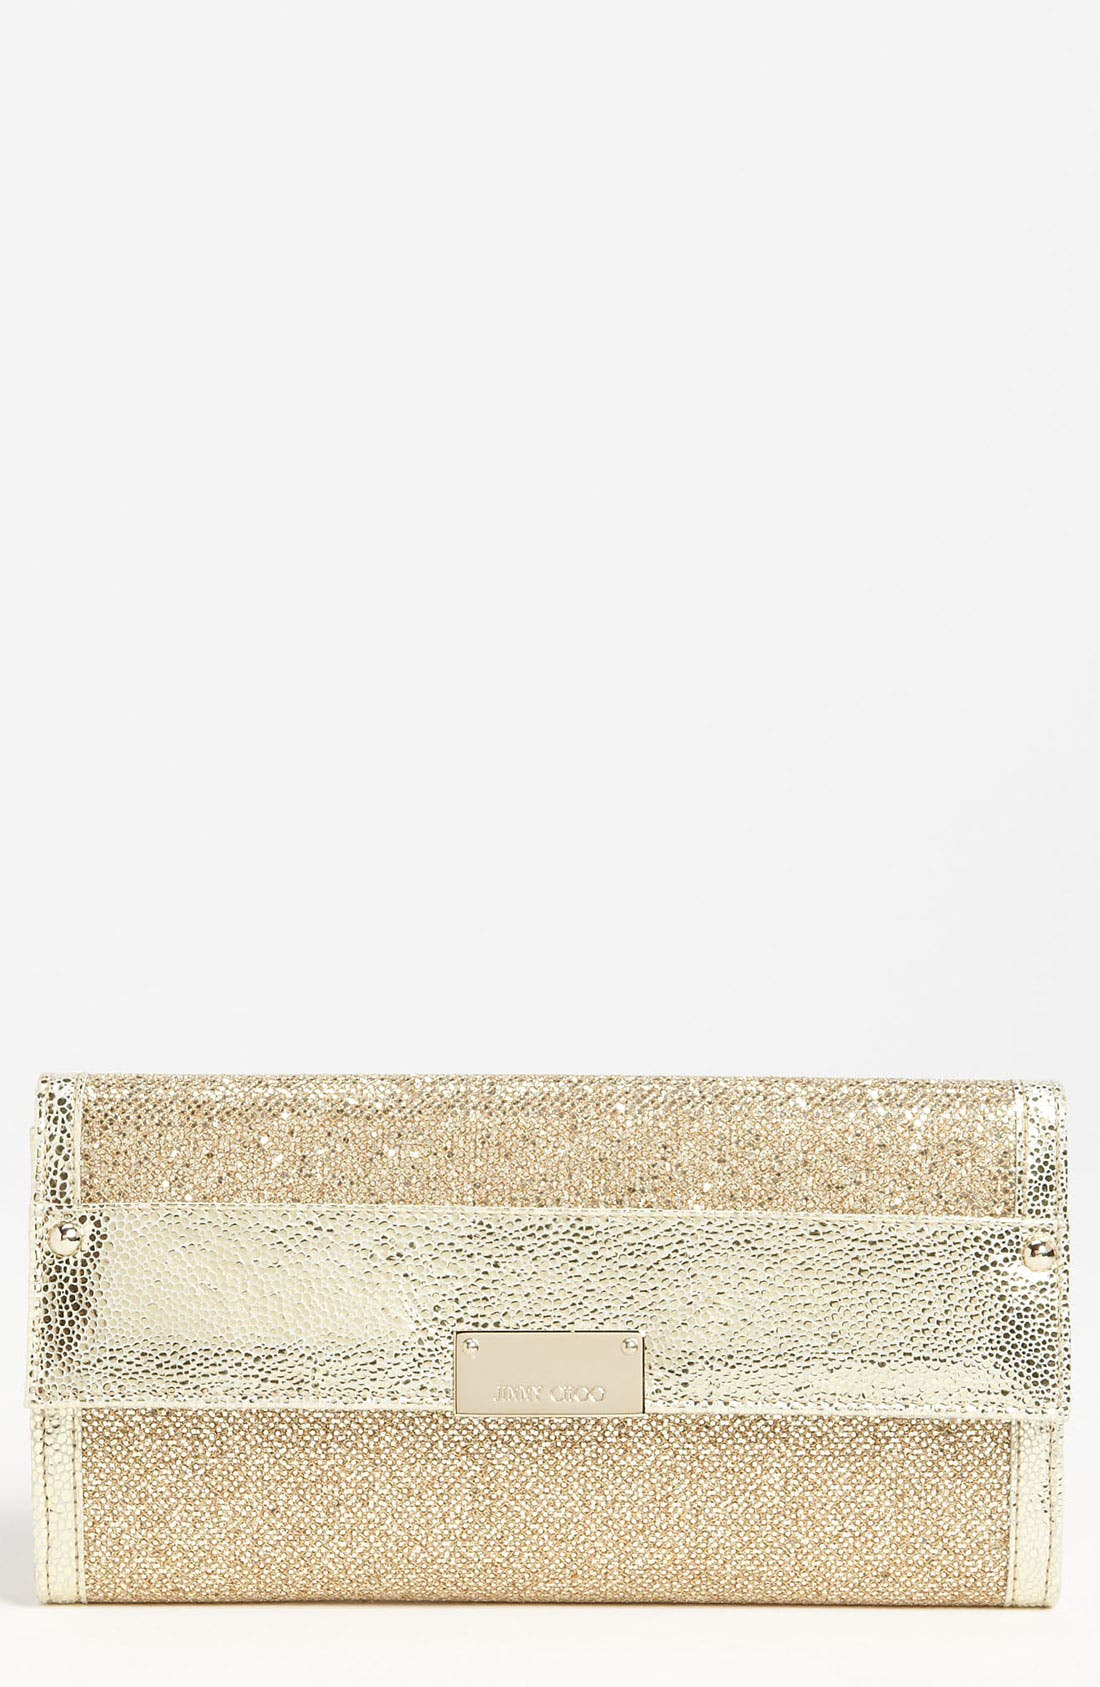 Alternate Image 1 Selected - Jimmy Choo 'Reese' Clutch